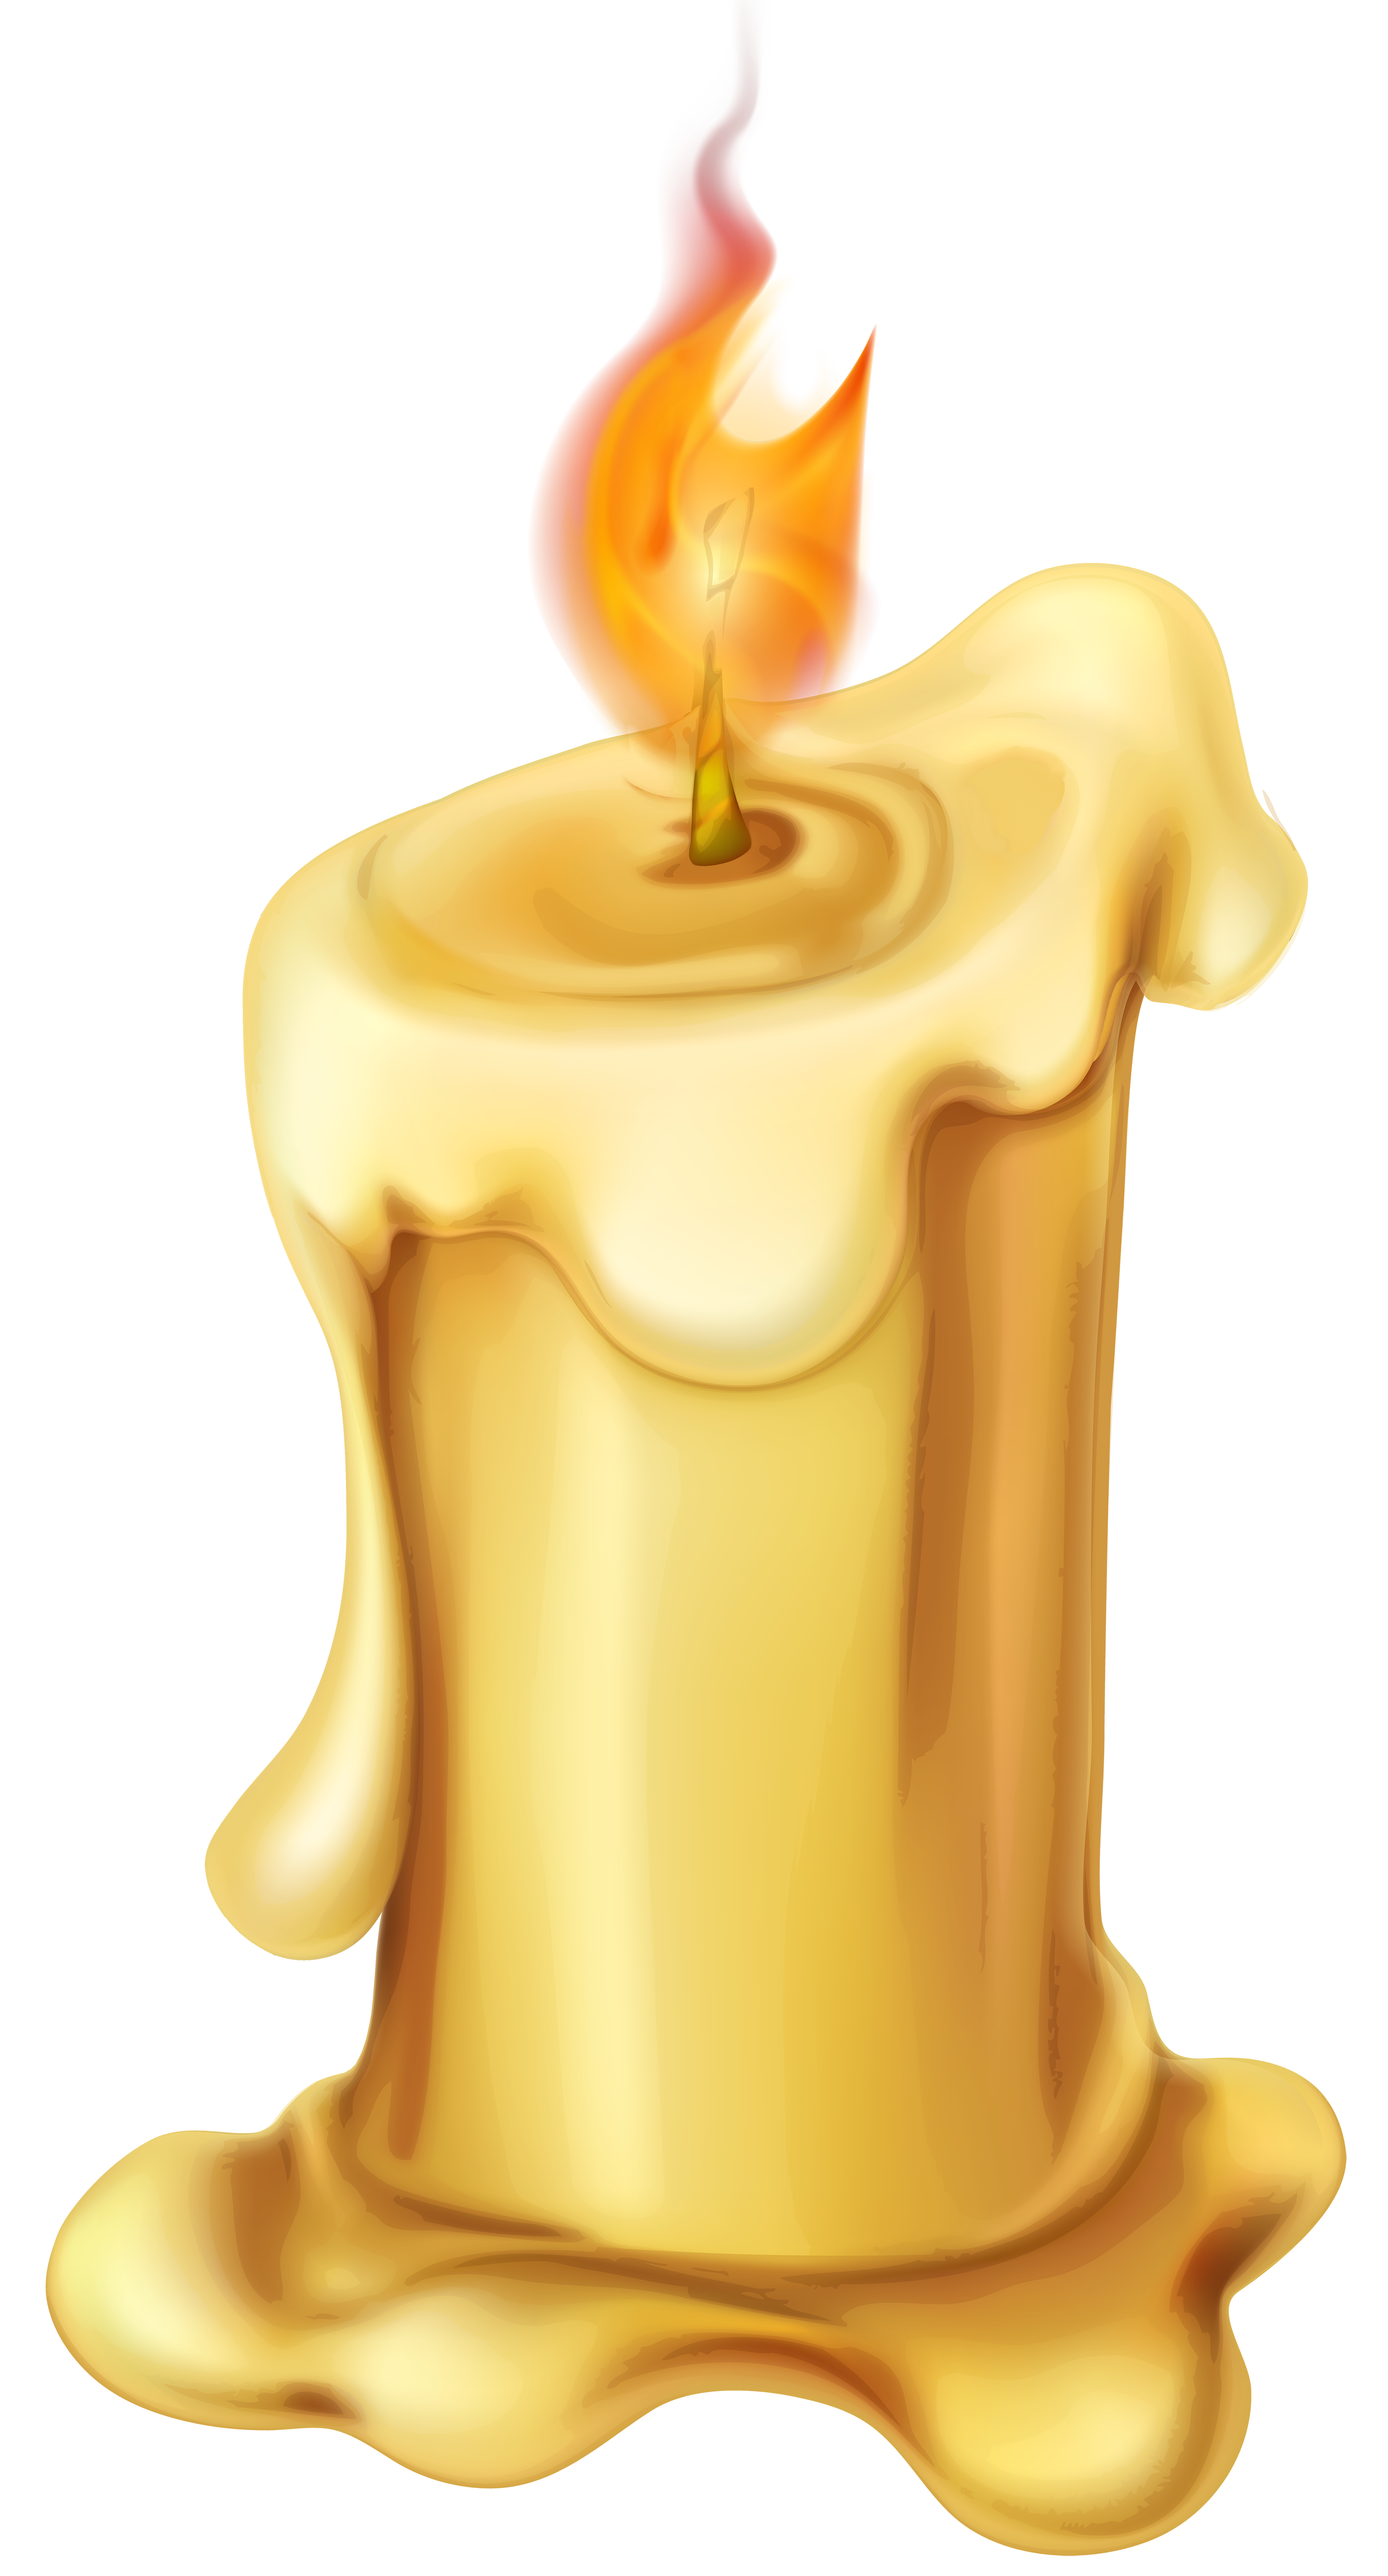 Candle png clip art. Candles clipart png freeuse